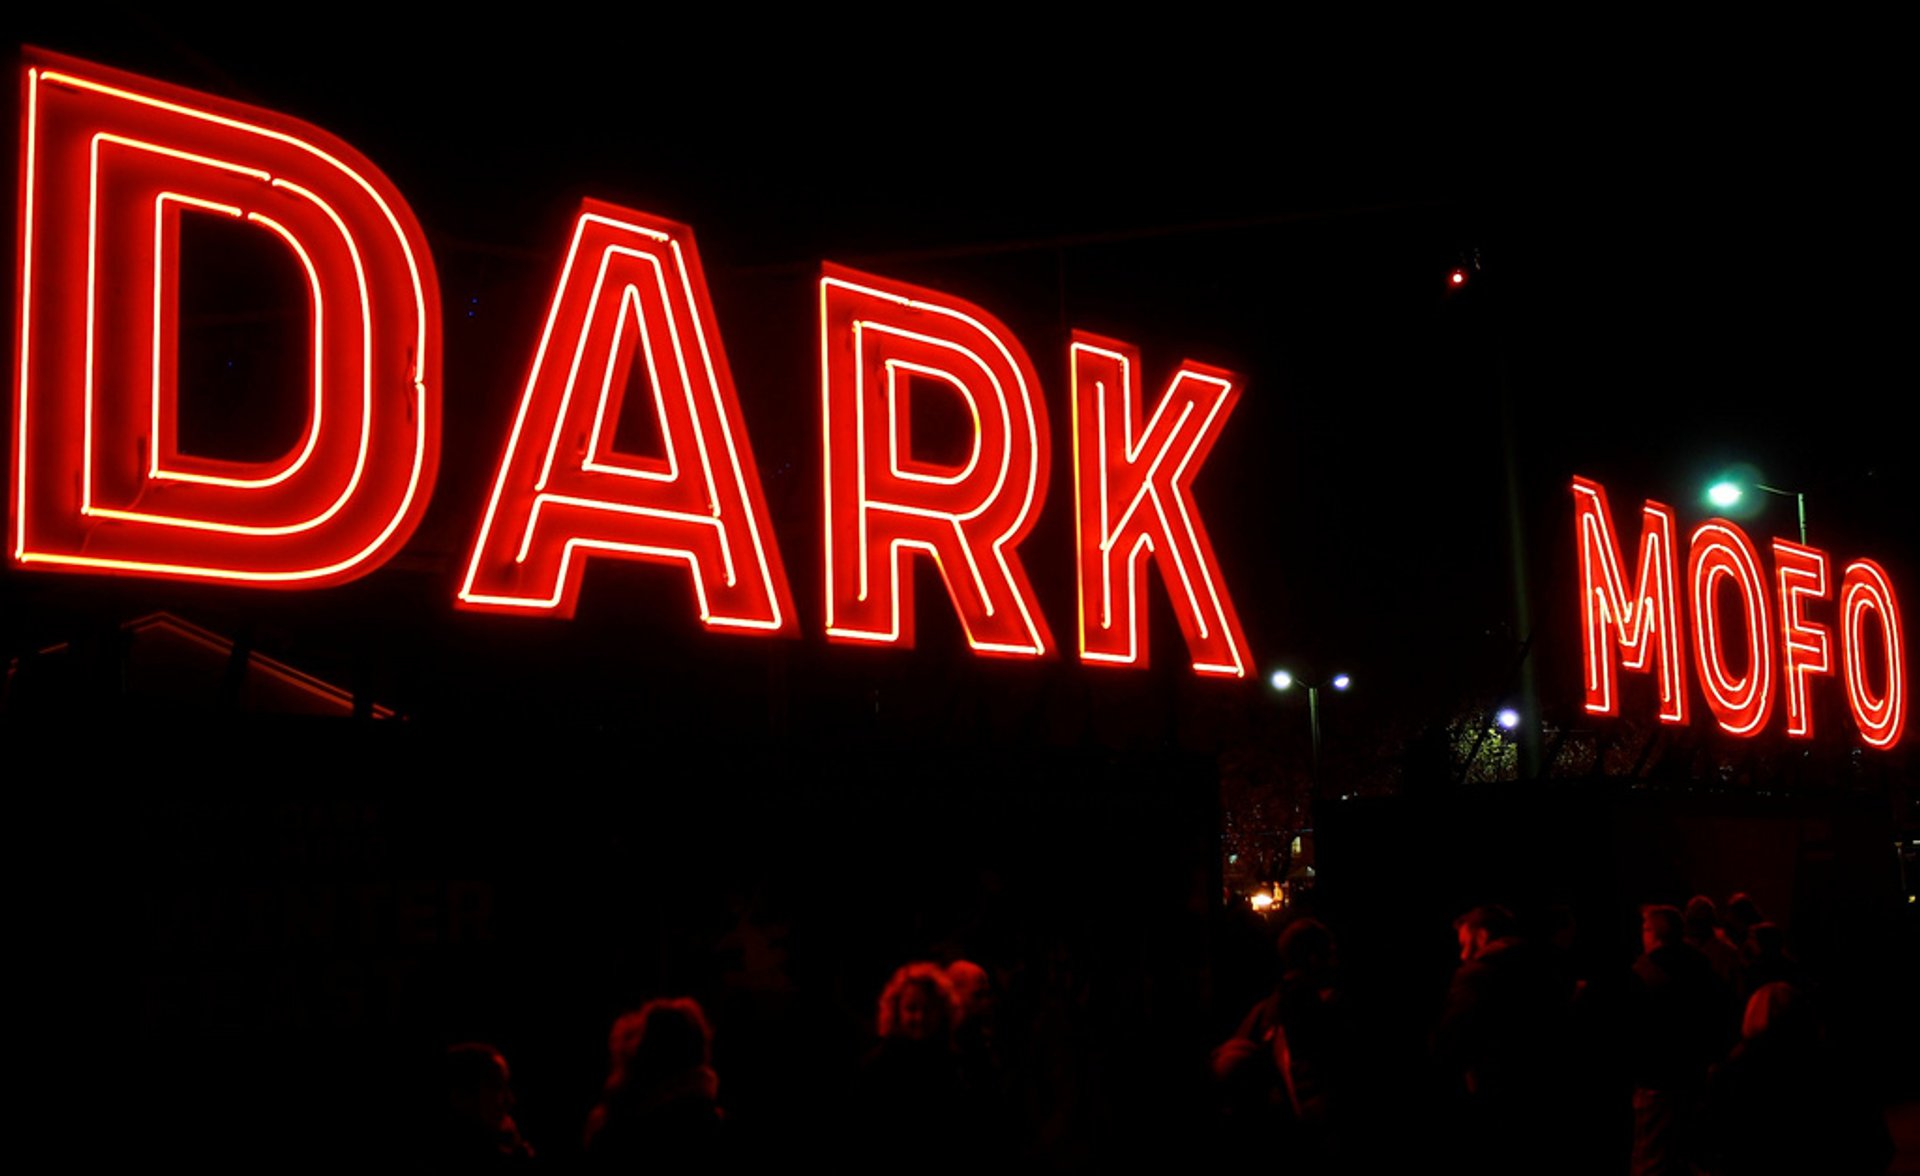 Dark Mofo Festival in Tasmania - Best Season